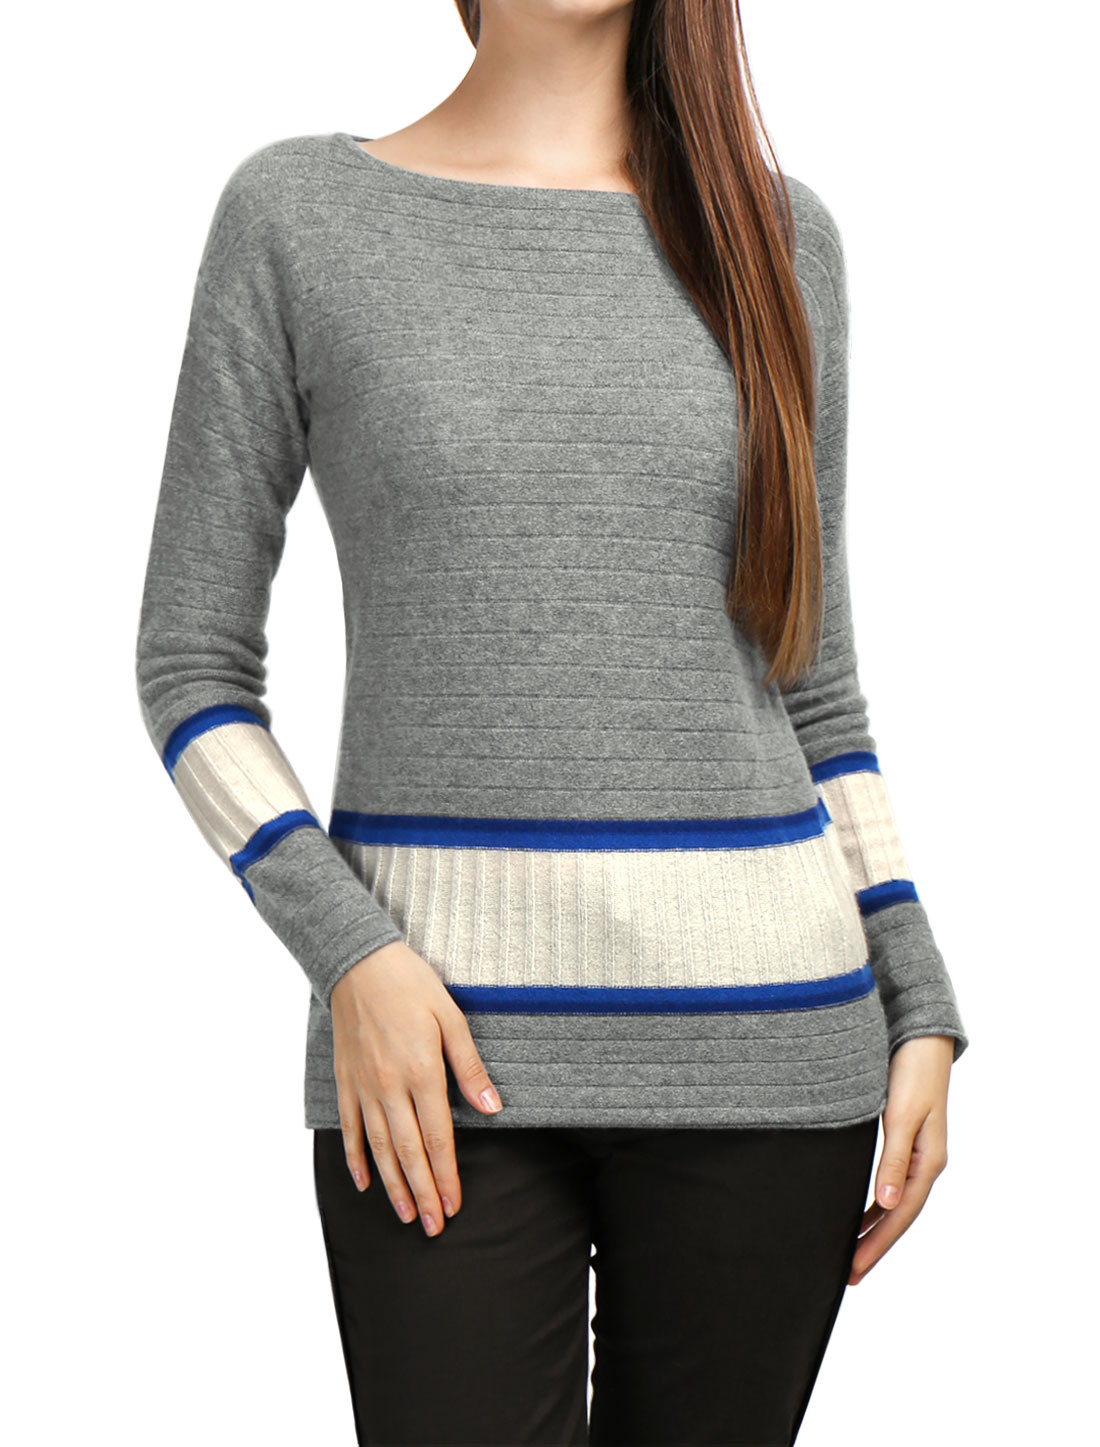 Women Boat Neck Jersey Contrast Rib Knit Cashmere Sweater Blue S